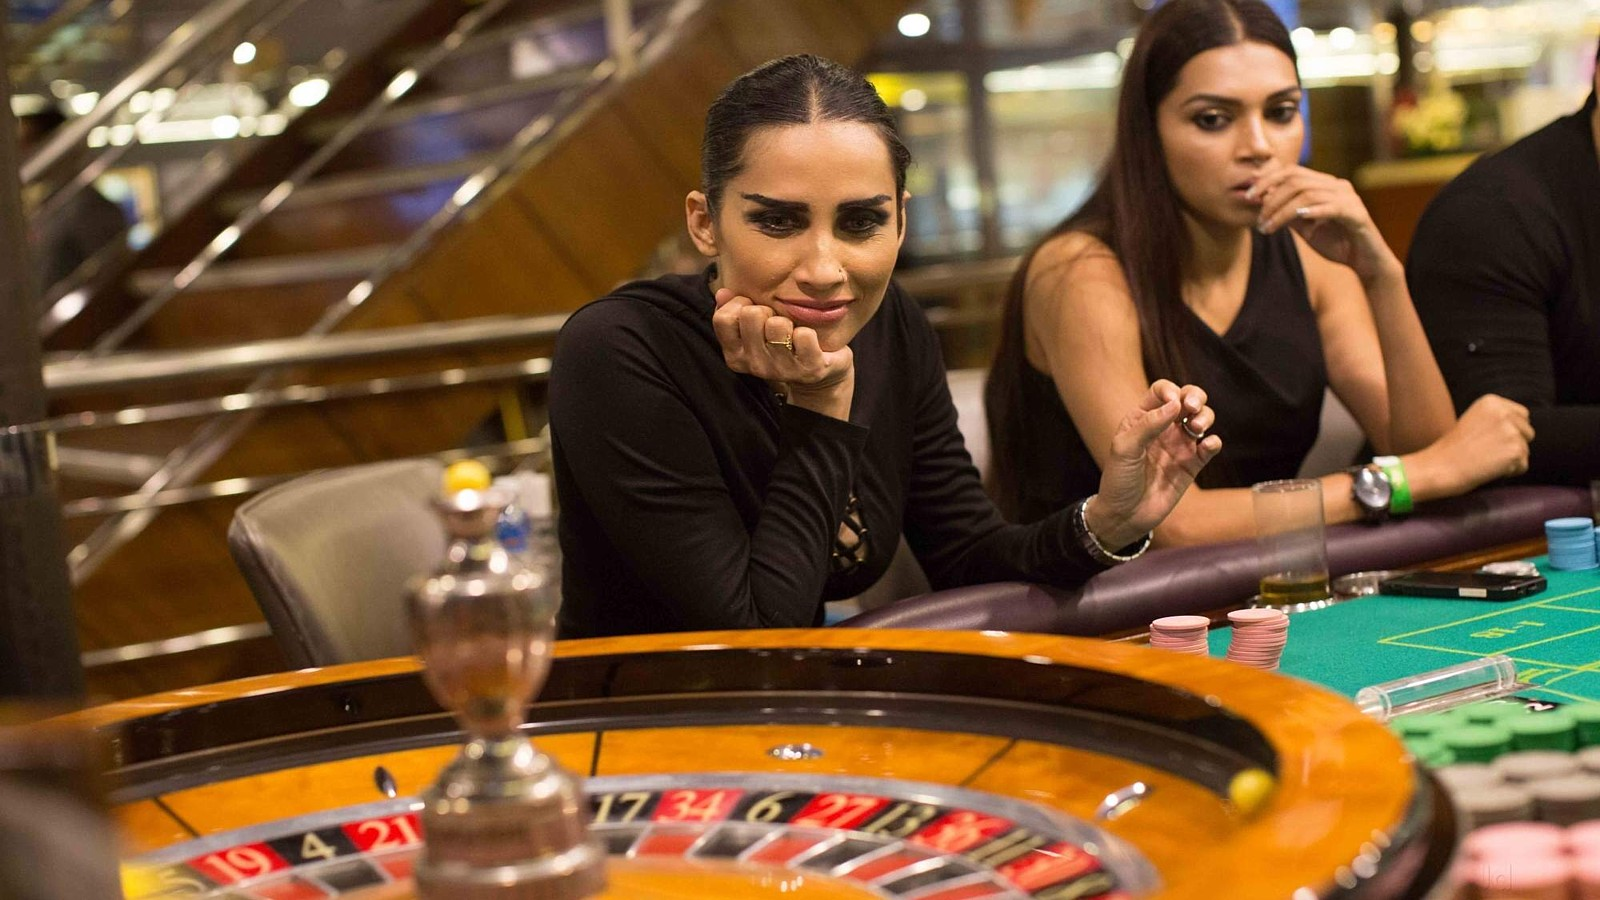 Hire a casino table accommodation wrest point casino hobart